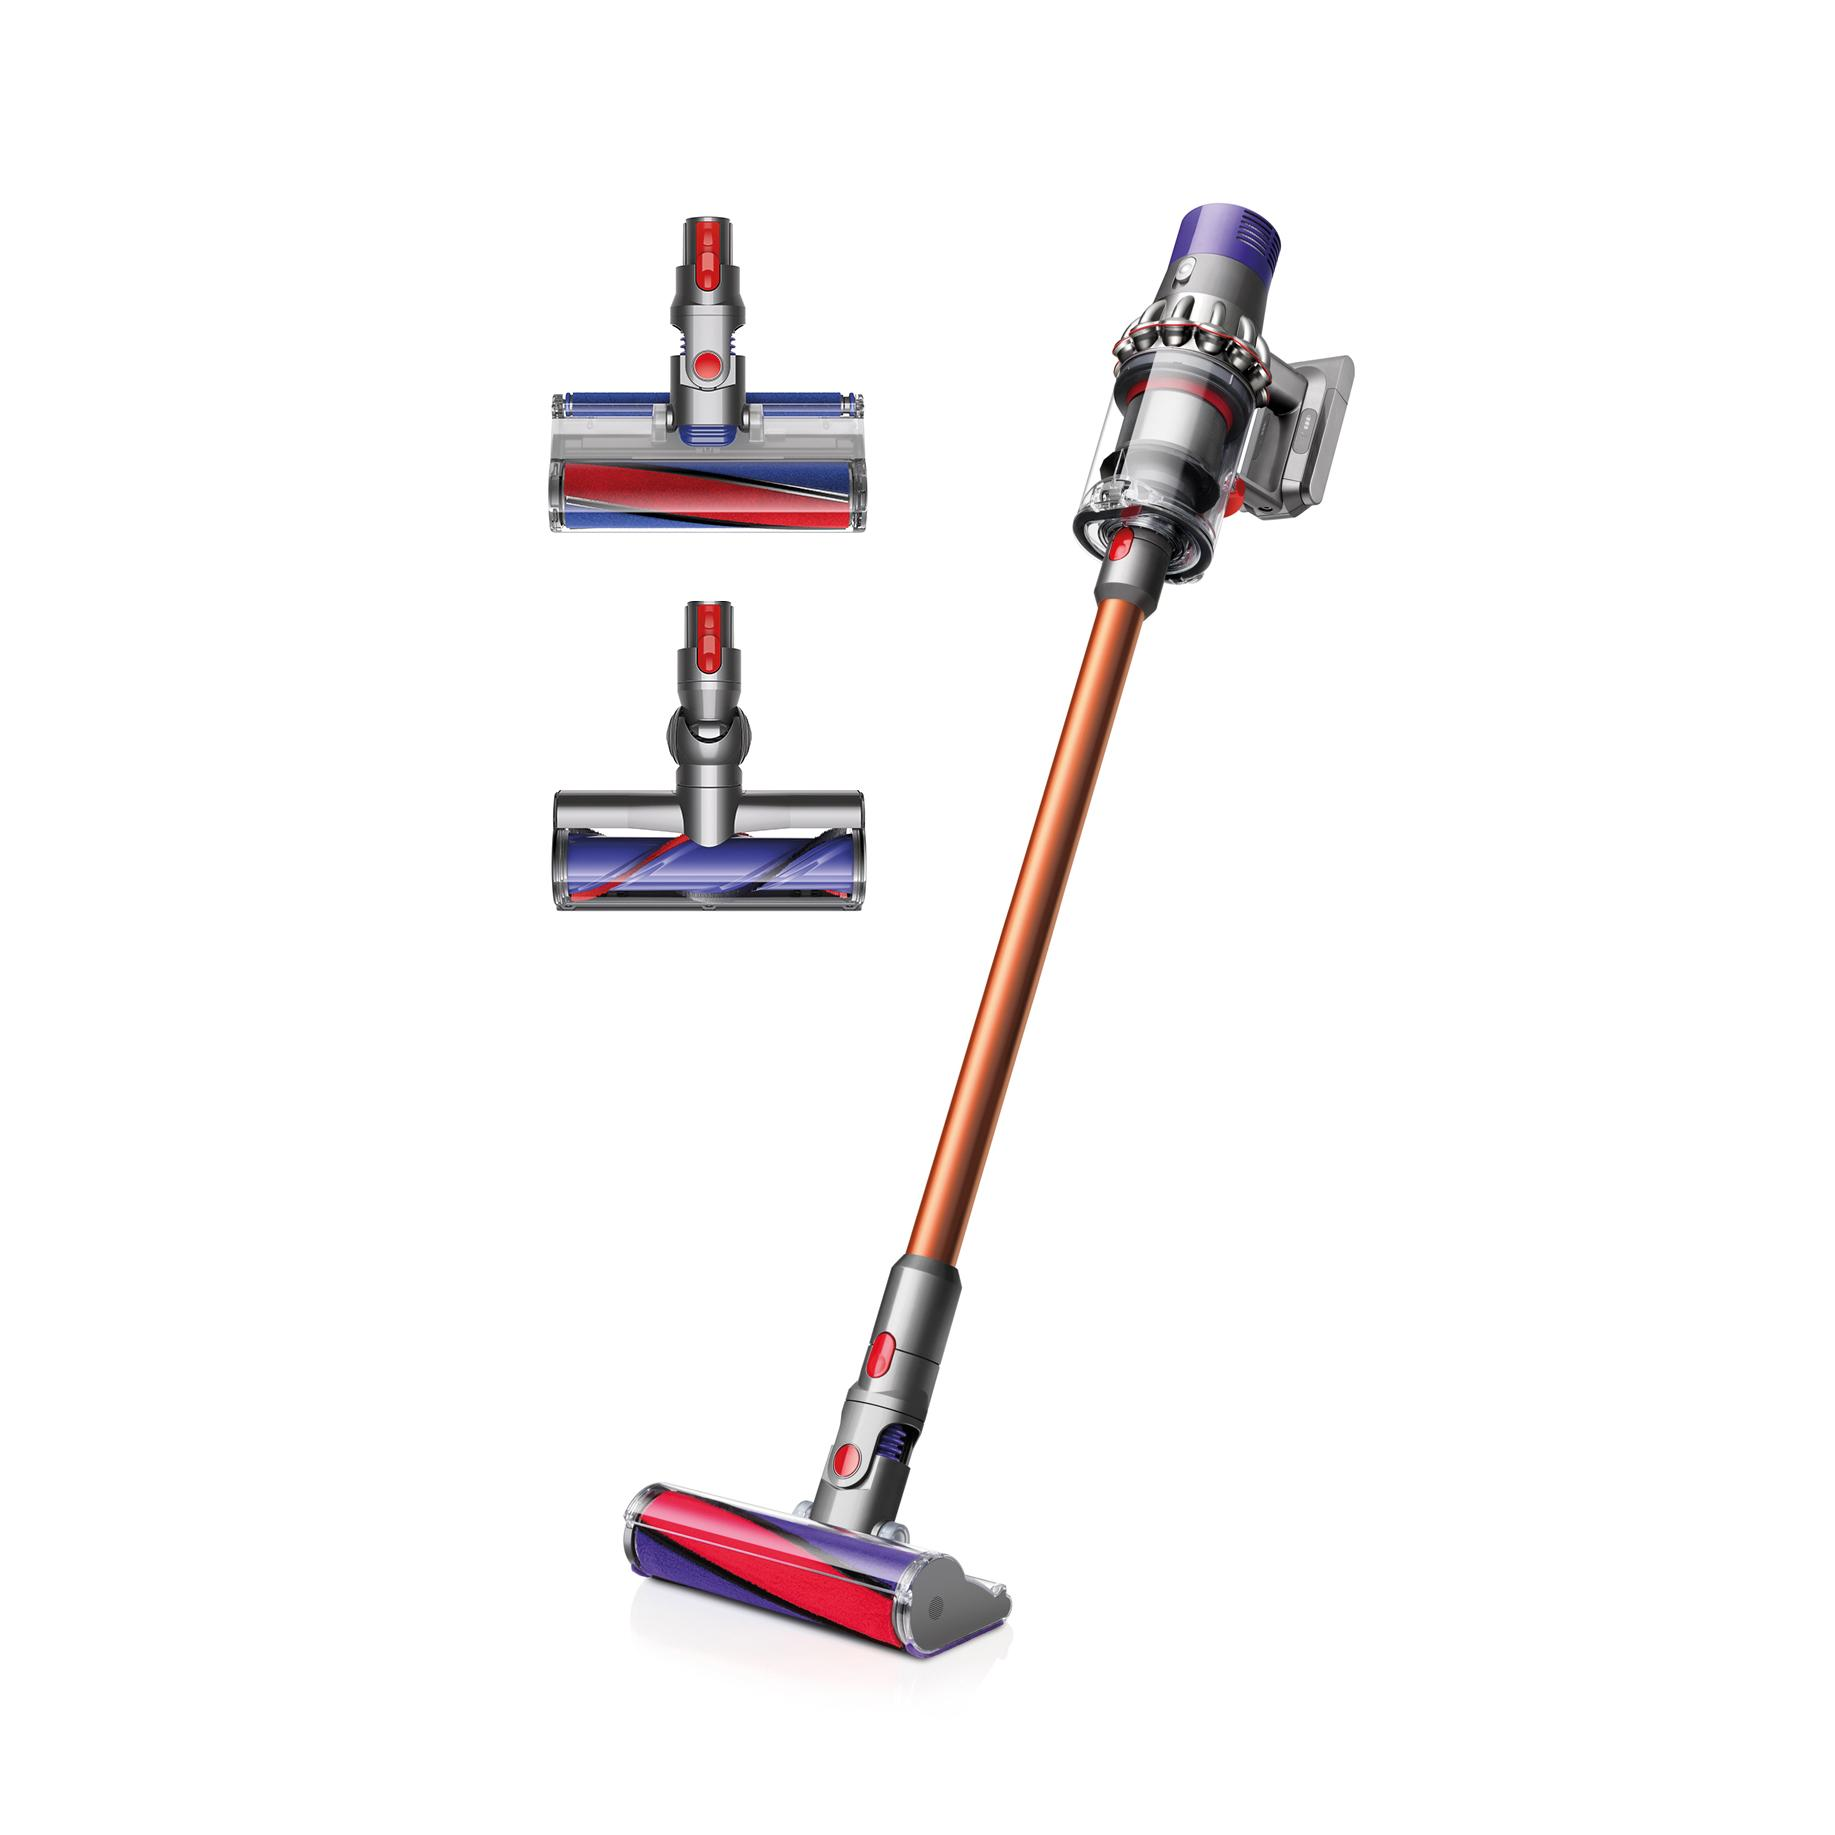 [NEW RELEASE] Dyson Cyclone V10 Absolute Cordfree Vacuum Cleaner